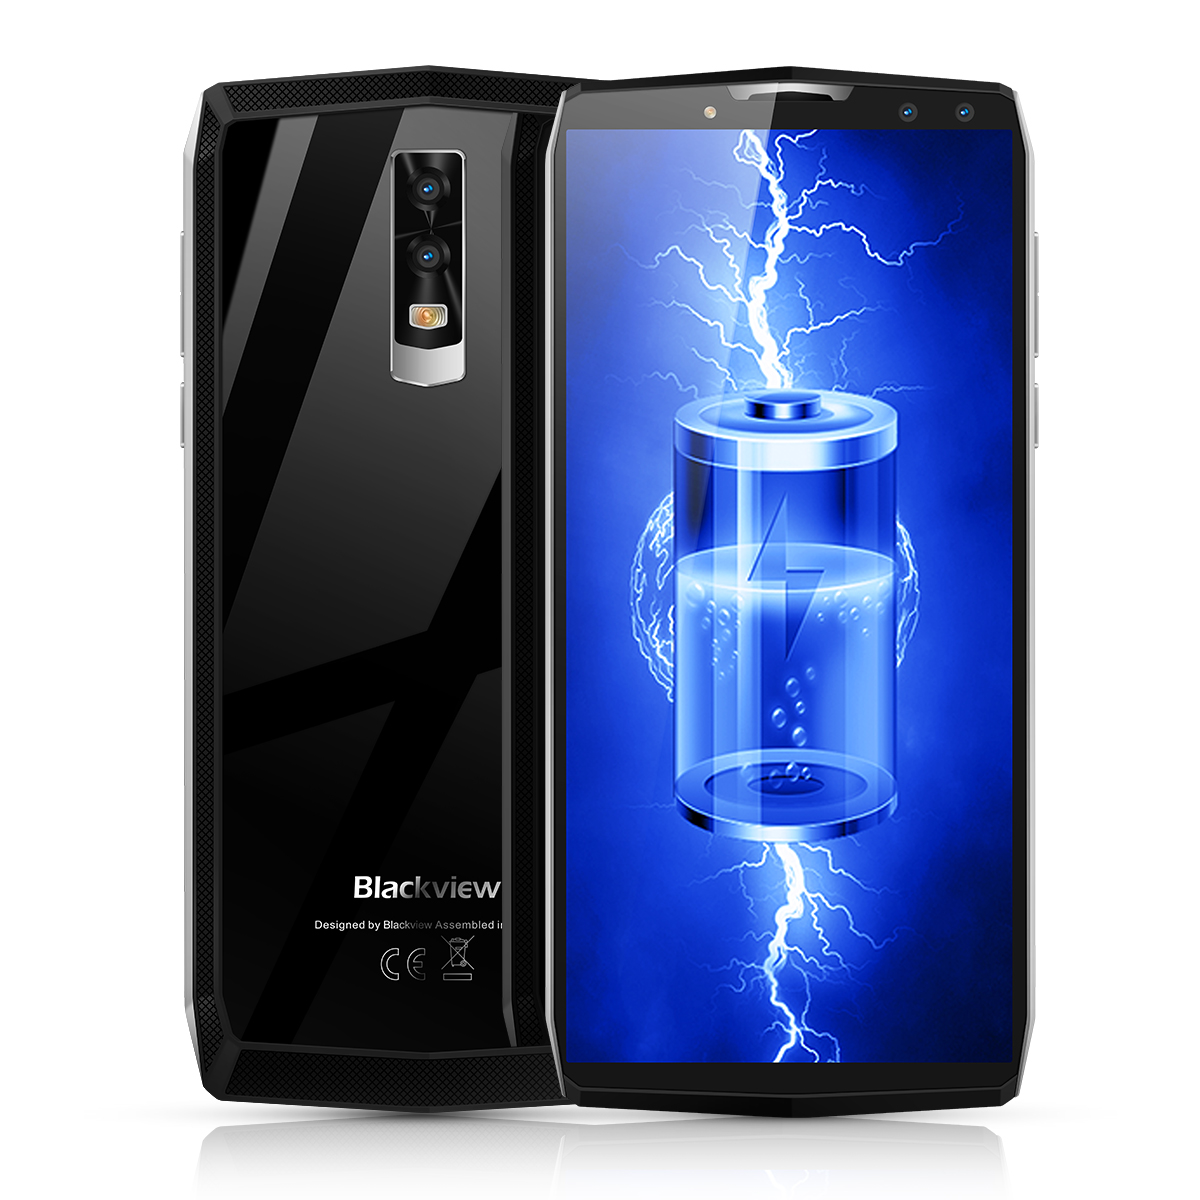 Wholesale Blackview P10000 Pro 5.99 Inch Octa-Core Phone (11000mAh, Dual Rear + Dual Front Camera, 4GB RAM, 64GB, Sliver)